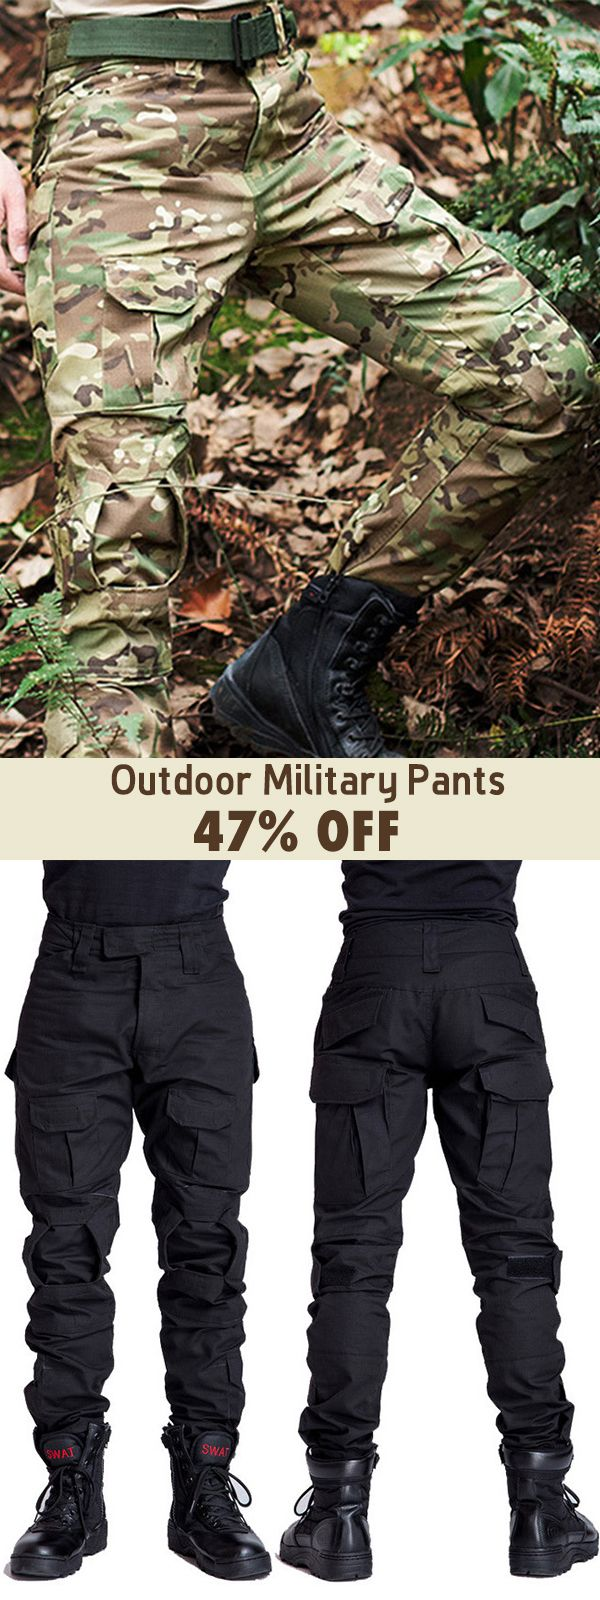 Mens Out of doors Navy Tactical pants Camo Printing Breathable Put on-resistant Informal Pants